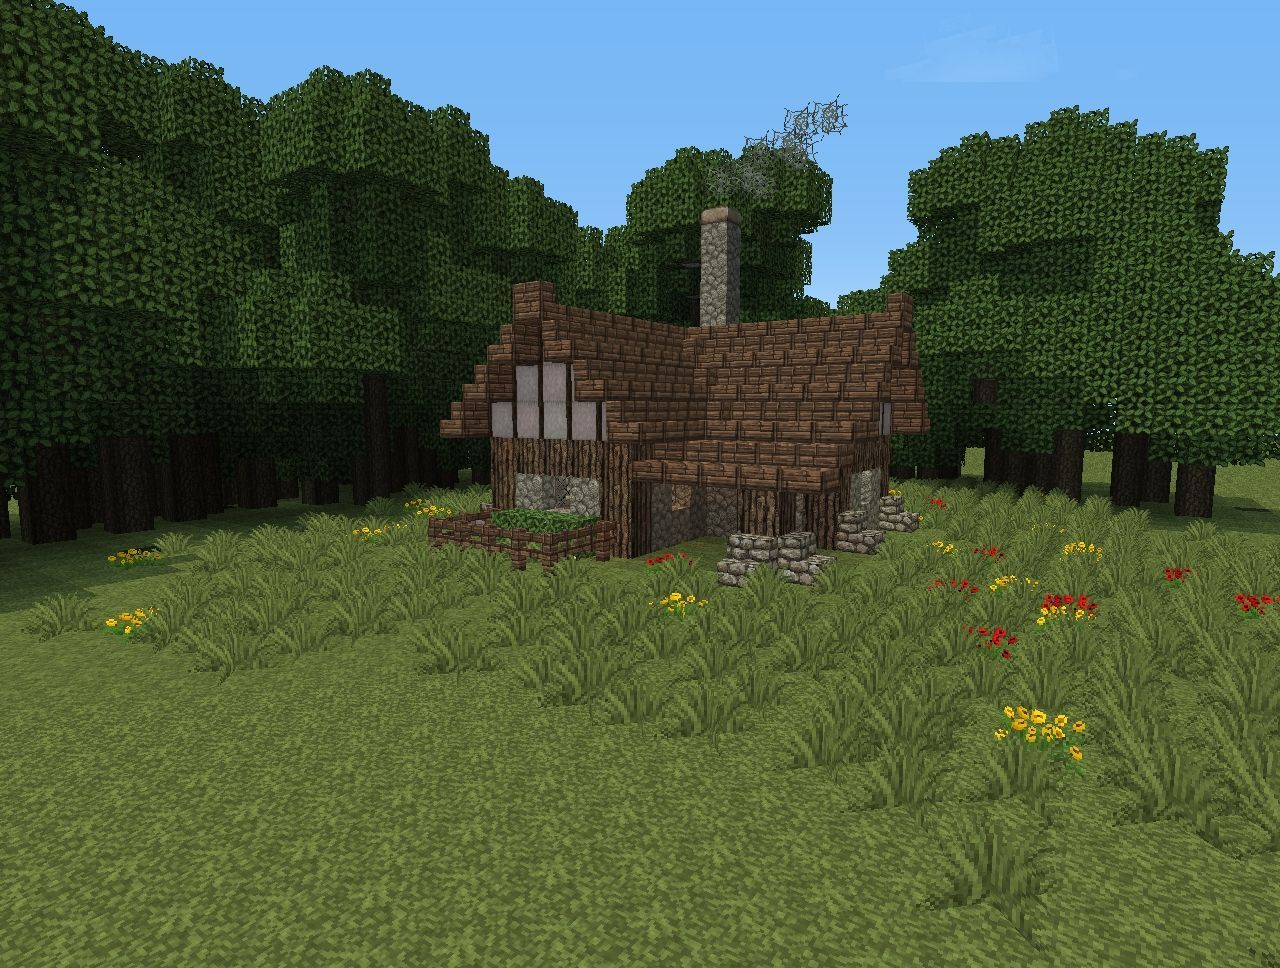 Simple Home Minecraft small house, Minecraft houses